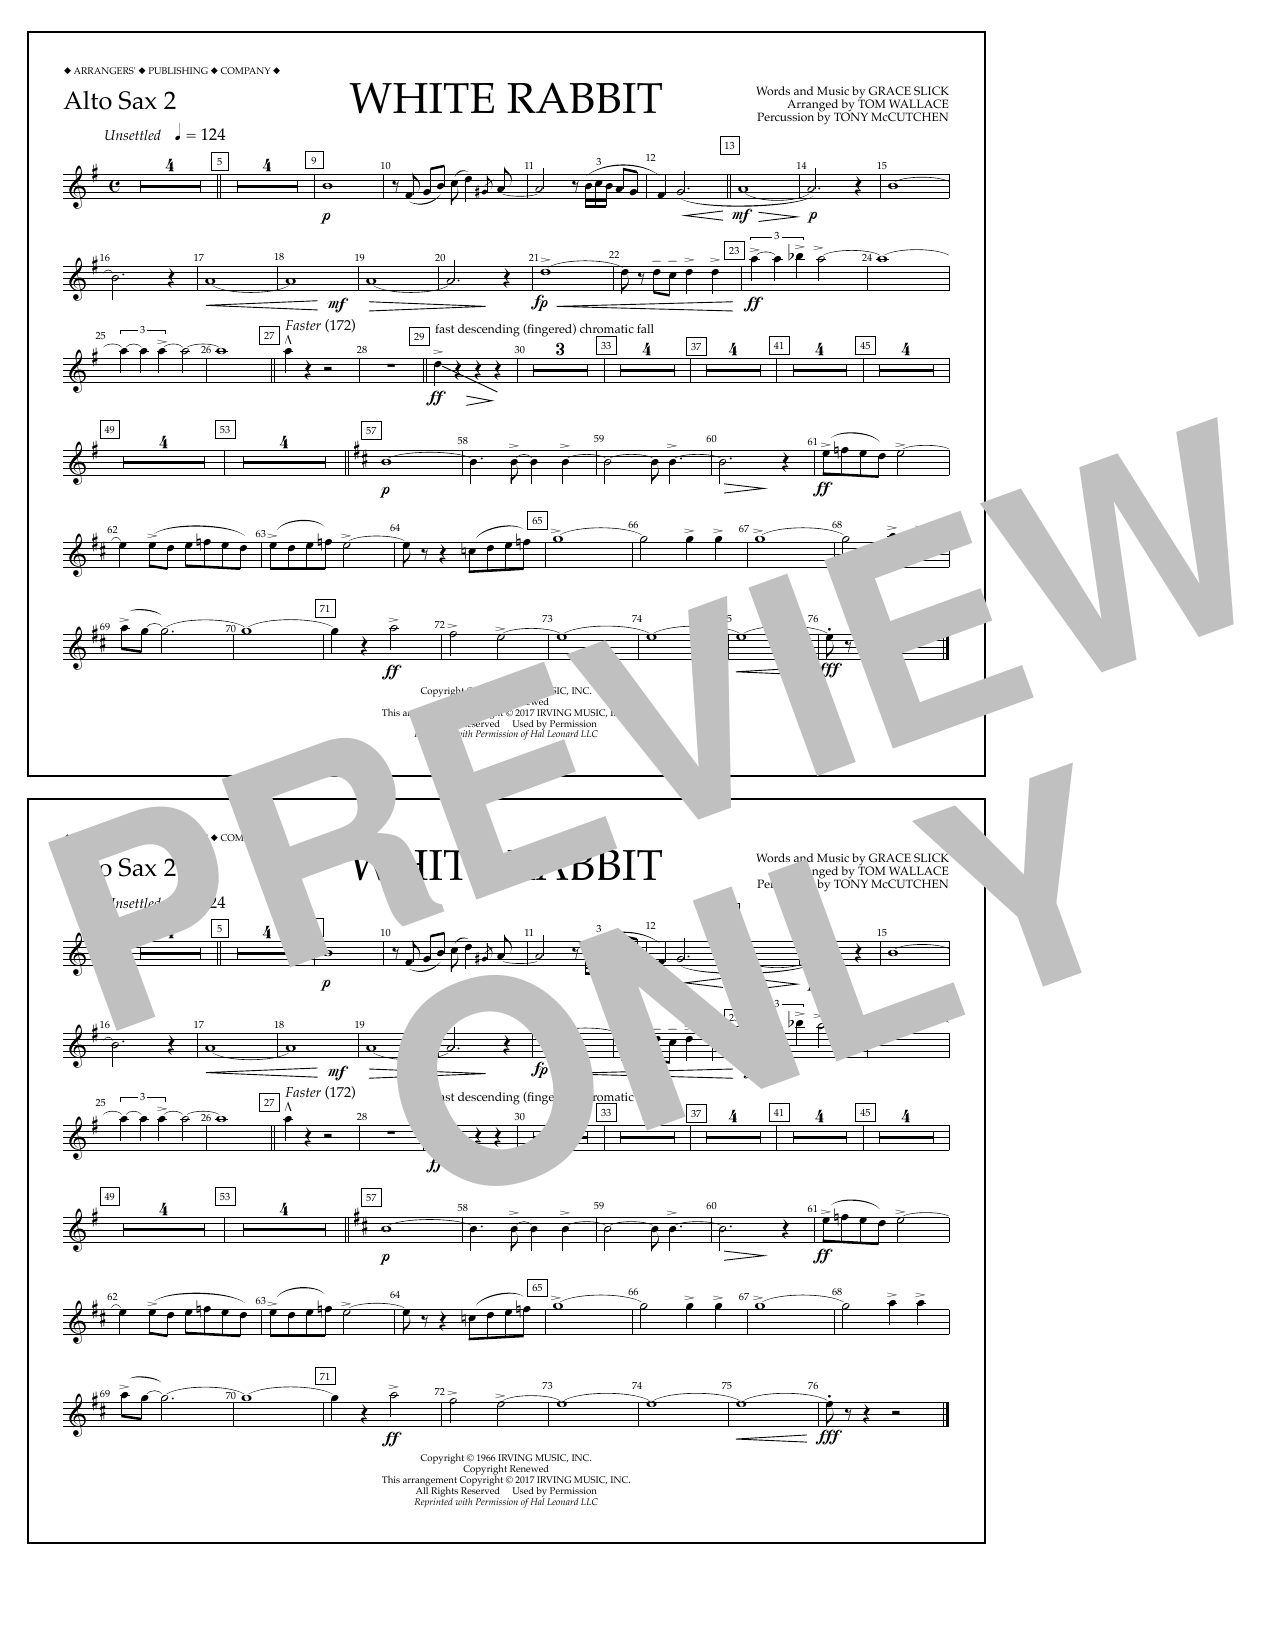 White Rabbit - Alto Sax 2 Sheet Music